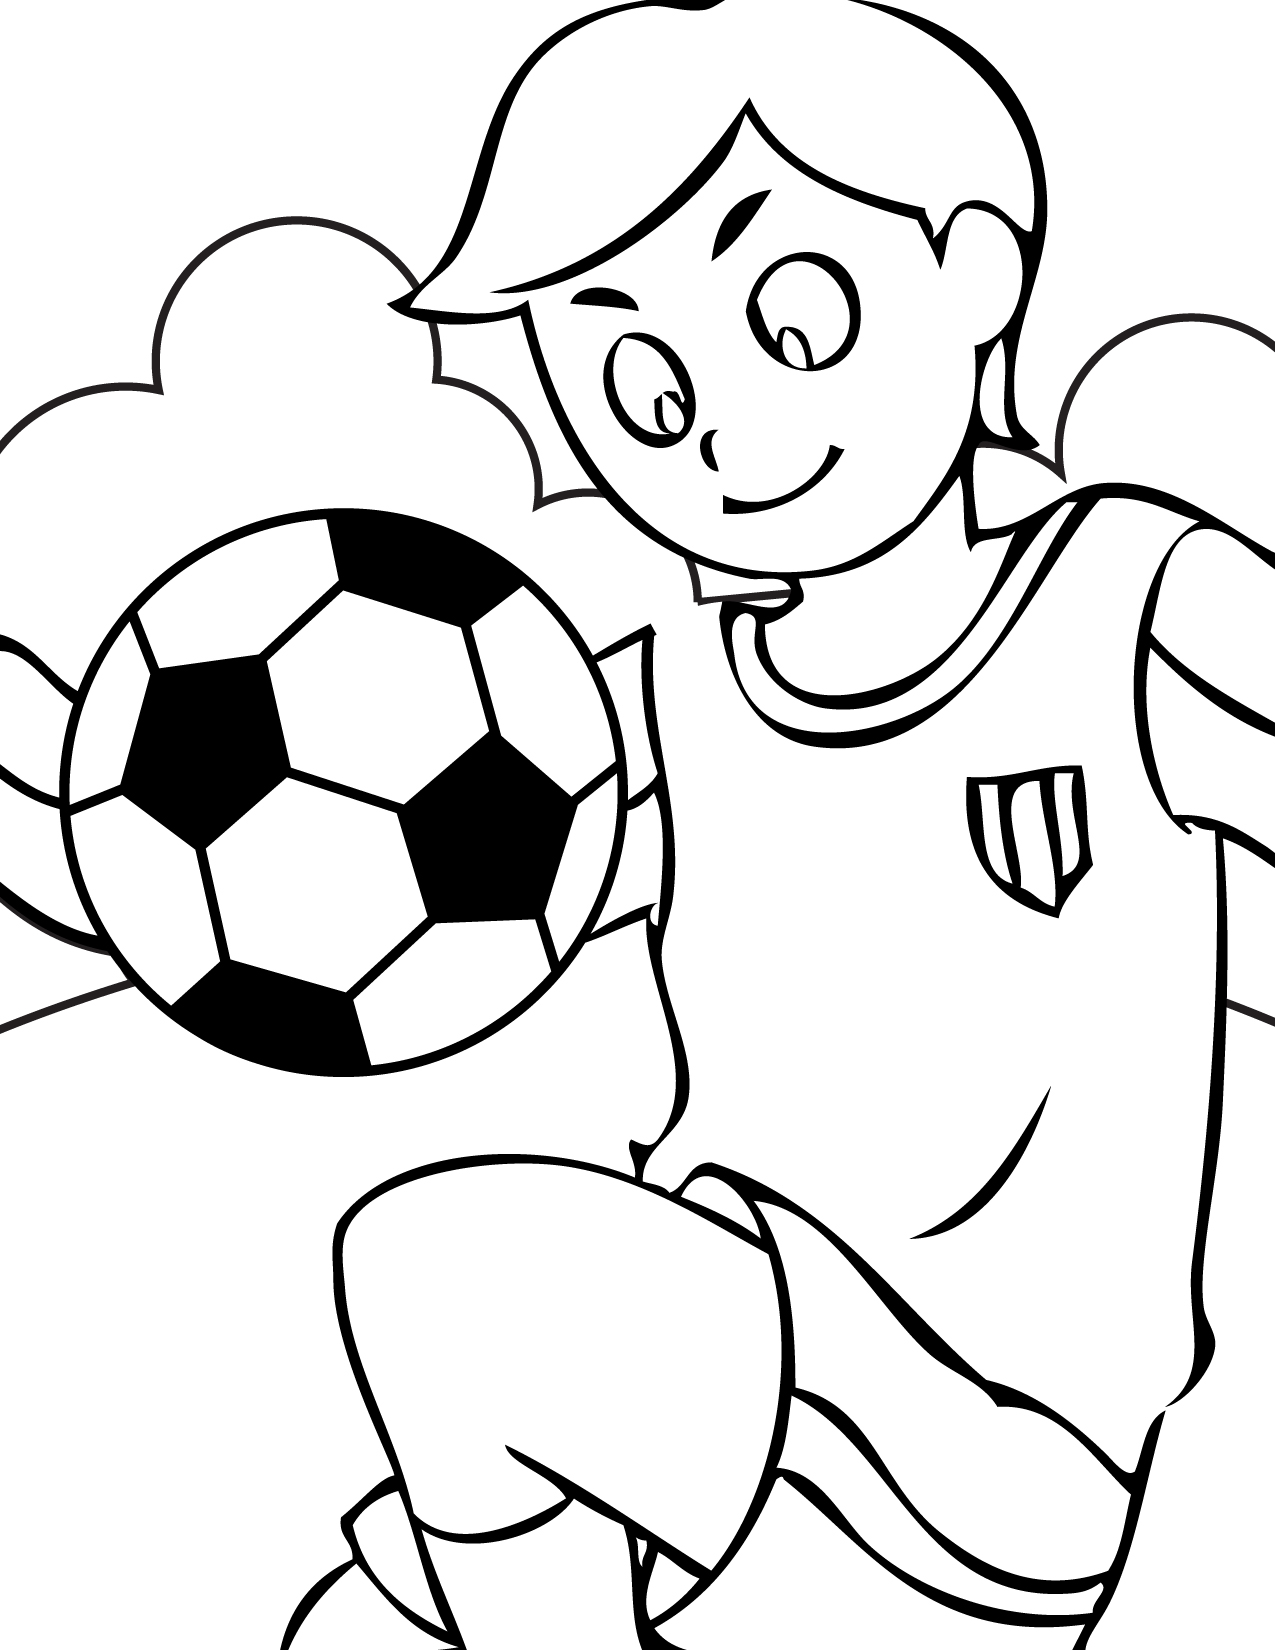 sports coloring pages for kid - photo#5